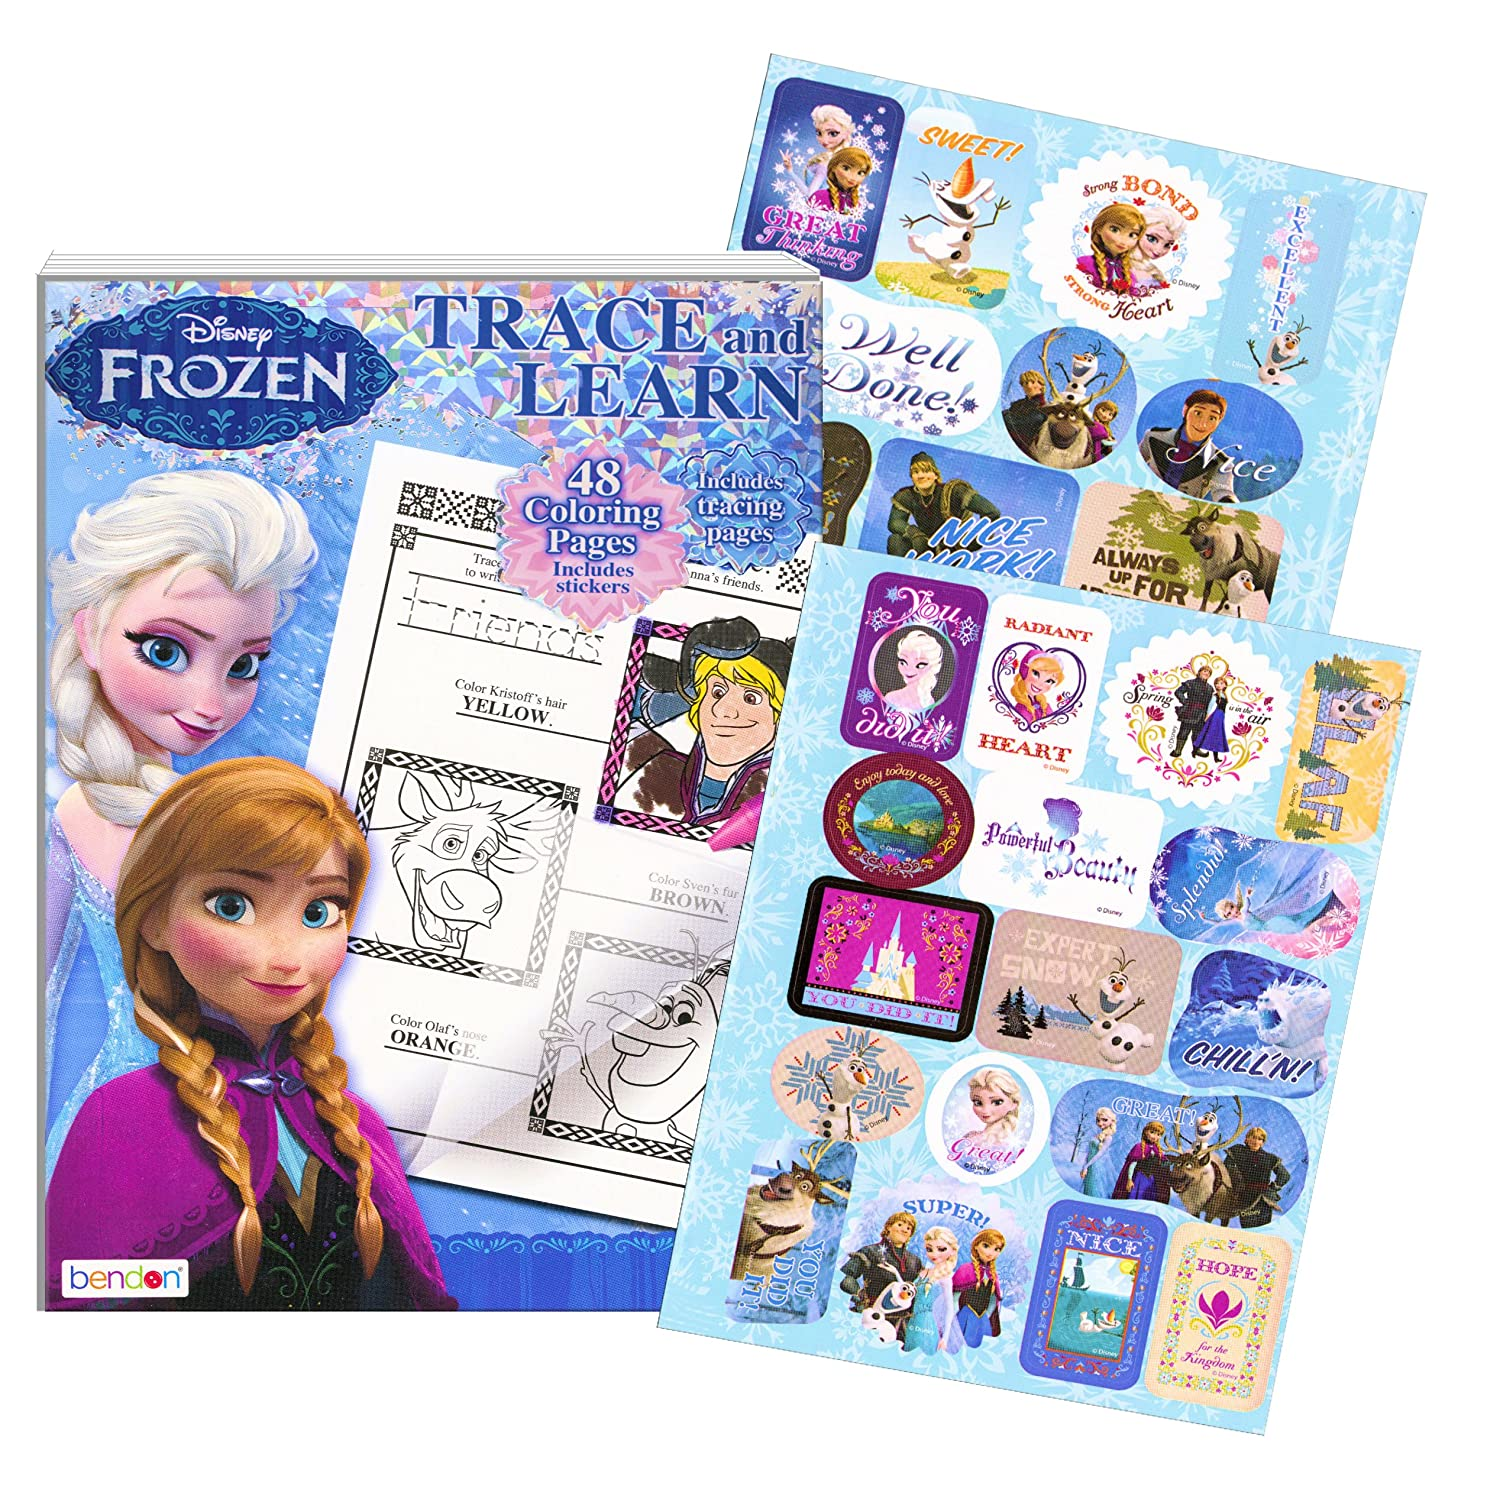 Disney Frozen Coloring Book ~ Trace and Learn Activity Book with Stickers